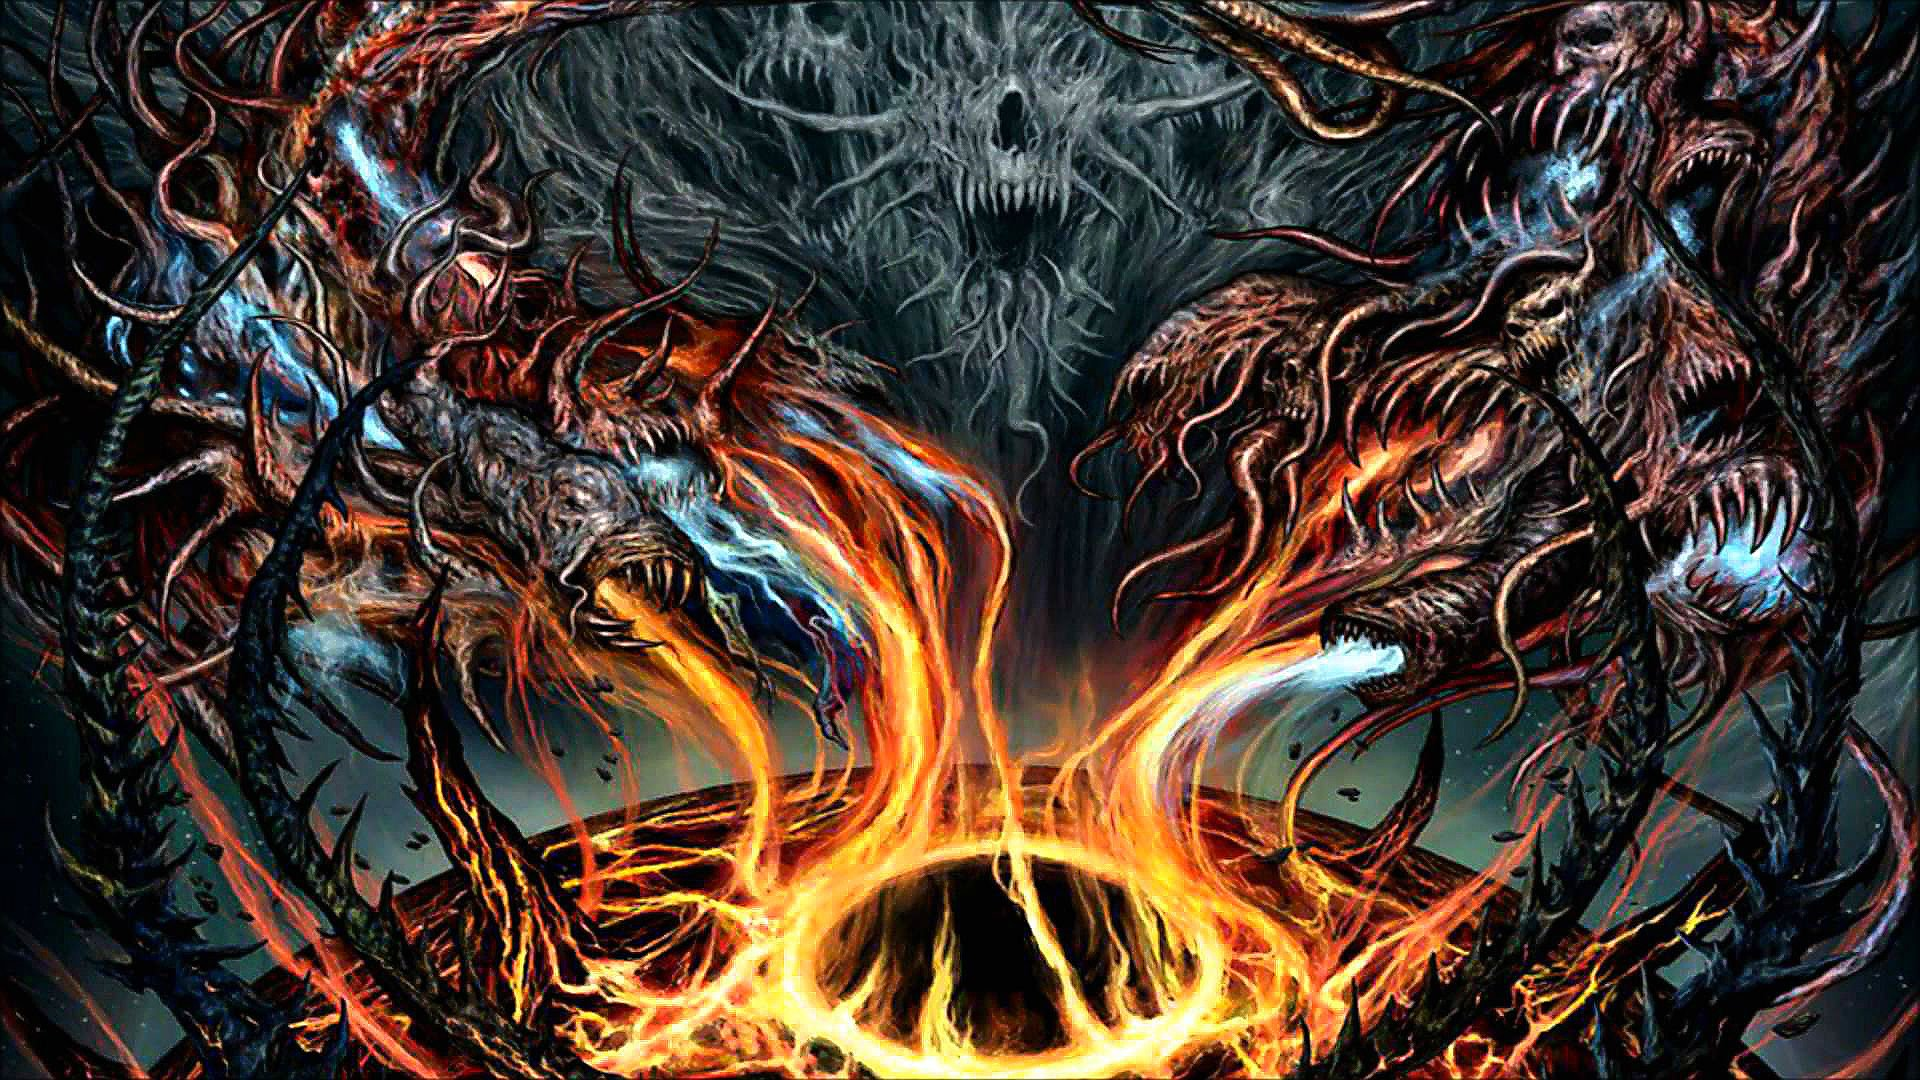 DEATH METAL Art - ID: 90633 - Art Abyss